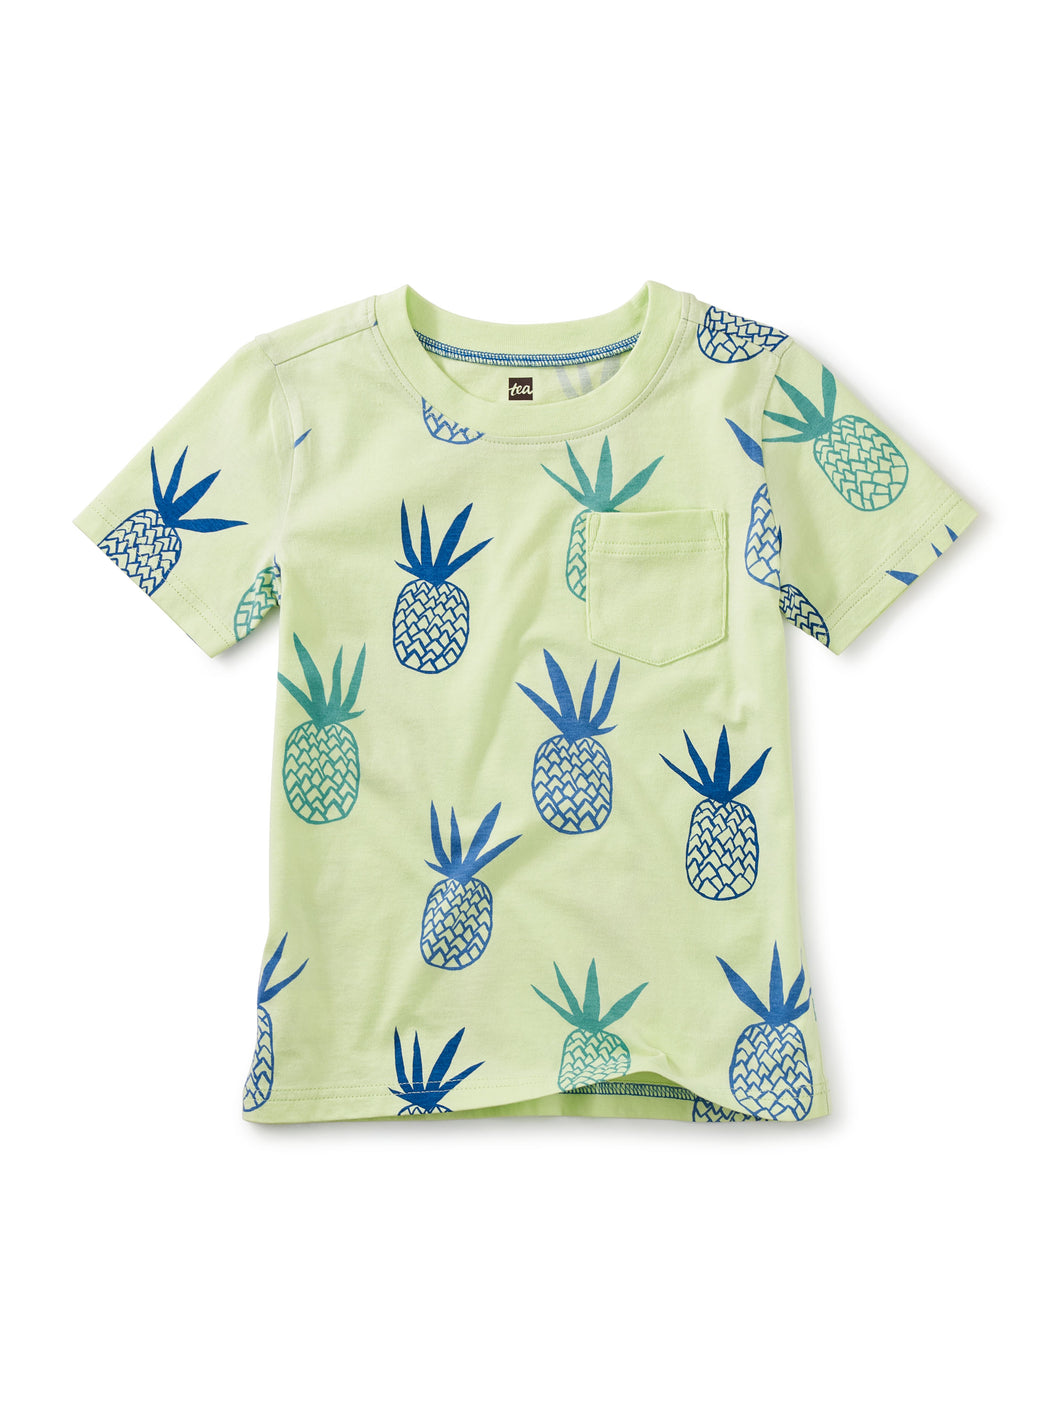 Tea Printed Pocket Tee Pineapples in Portugal